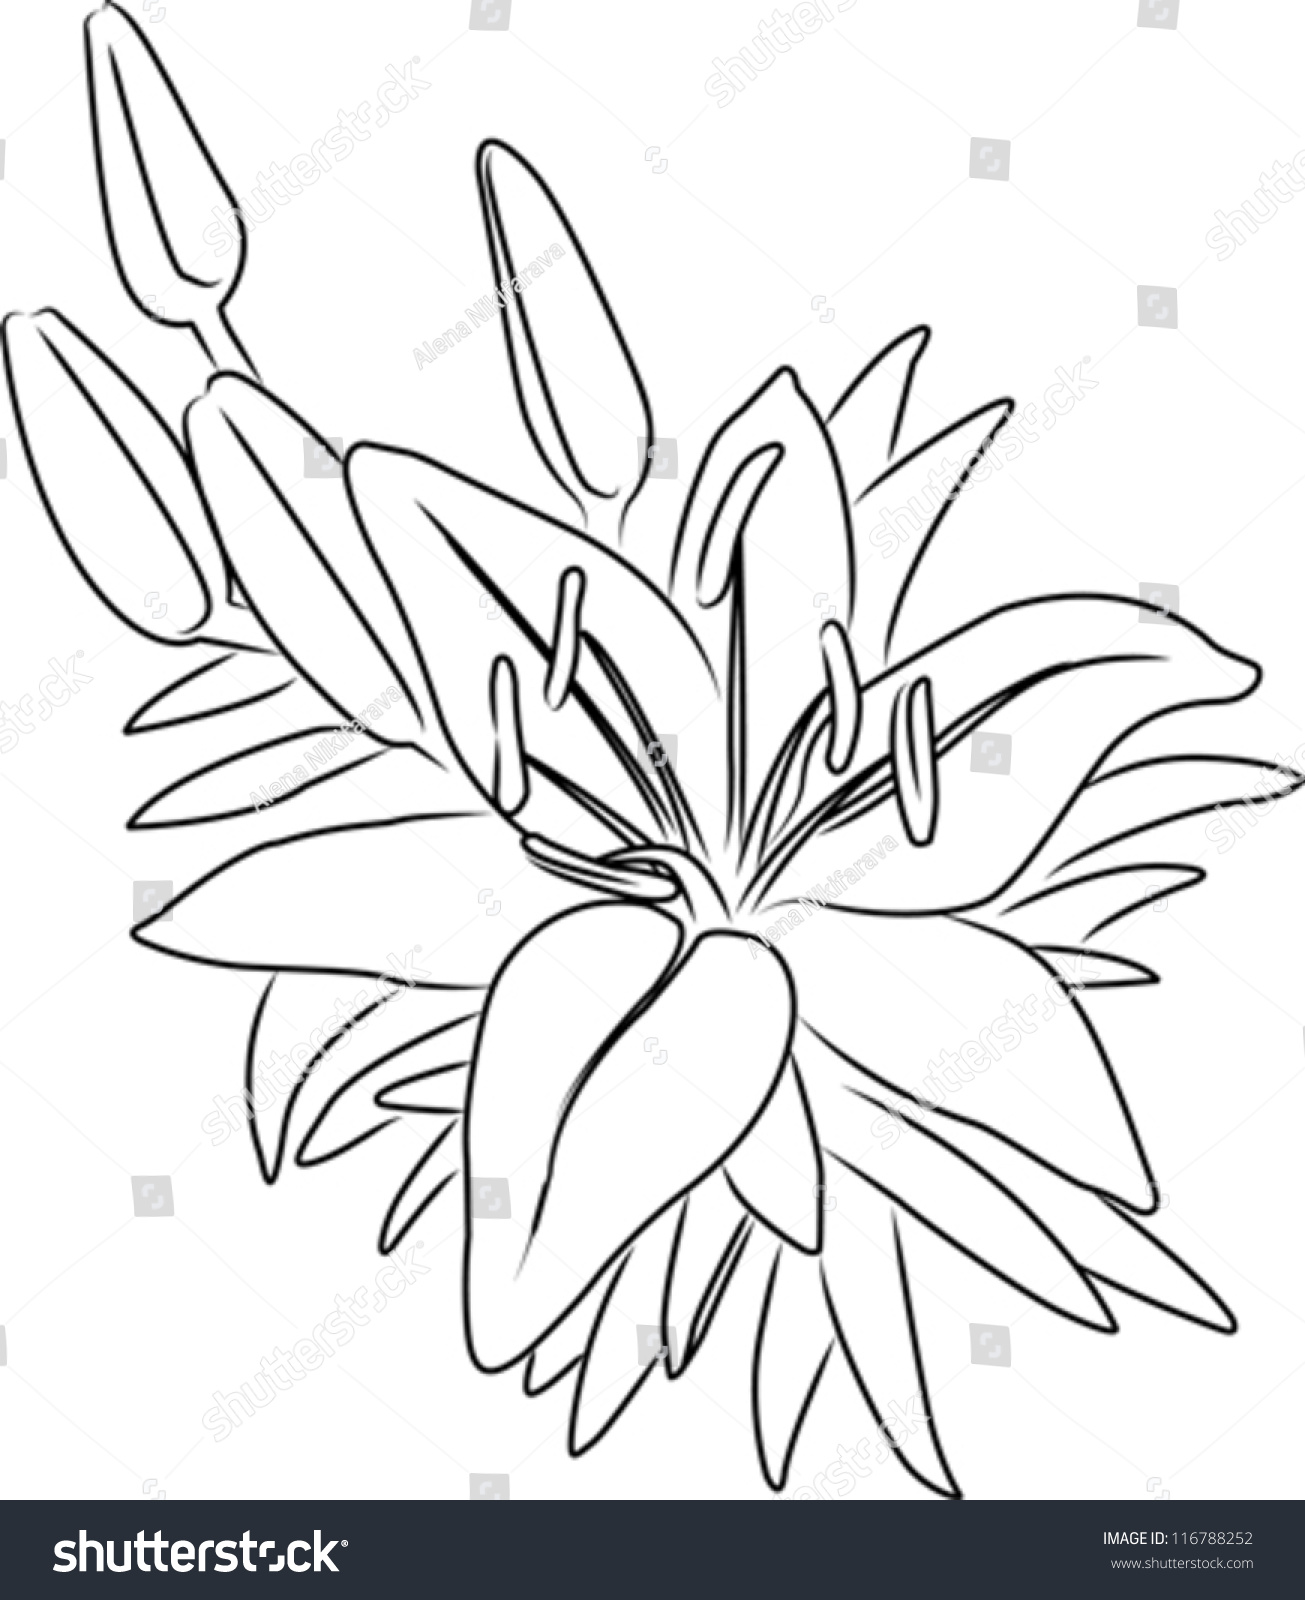 Blooming Asiatic Lily Flower Bouquet Buds Stock Vector 116788252